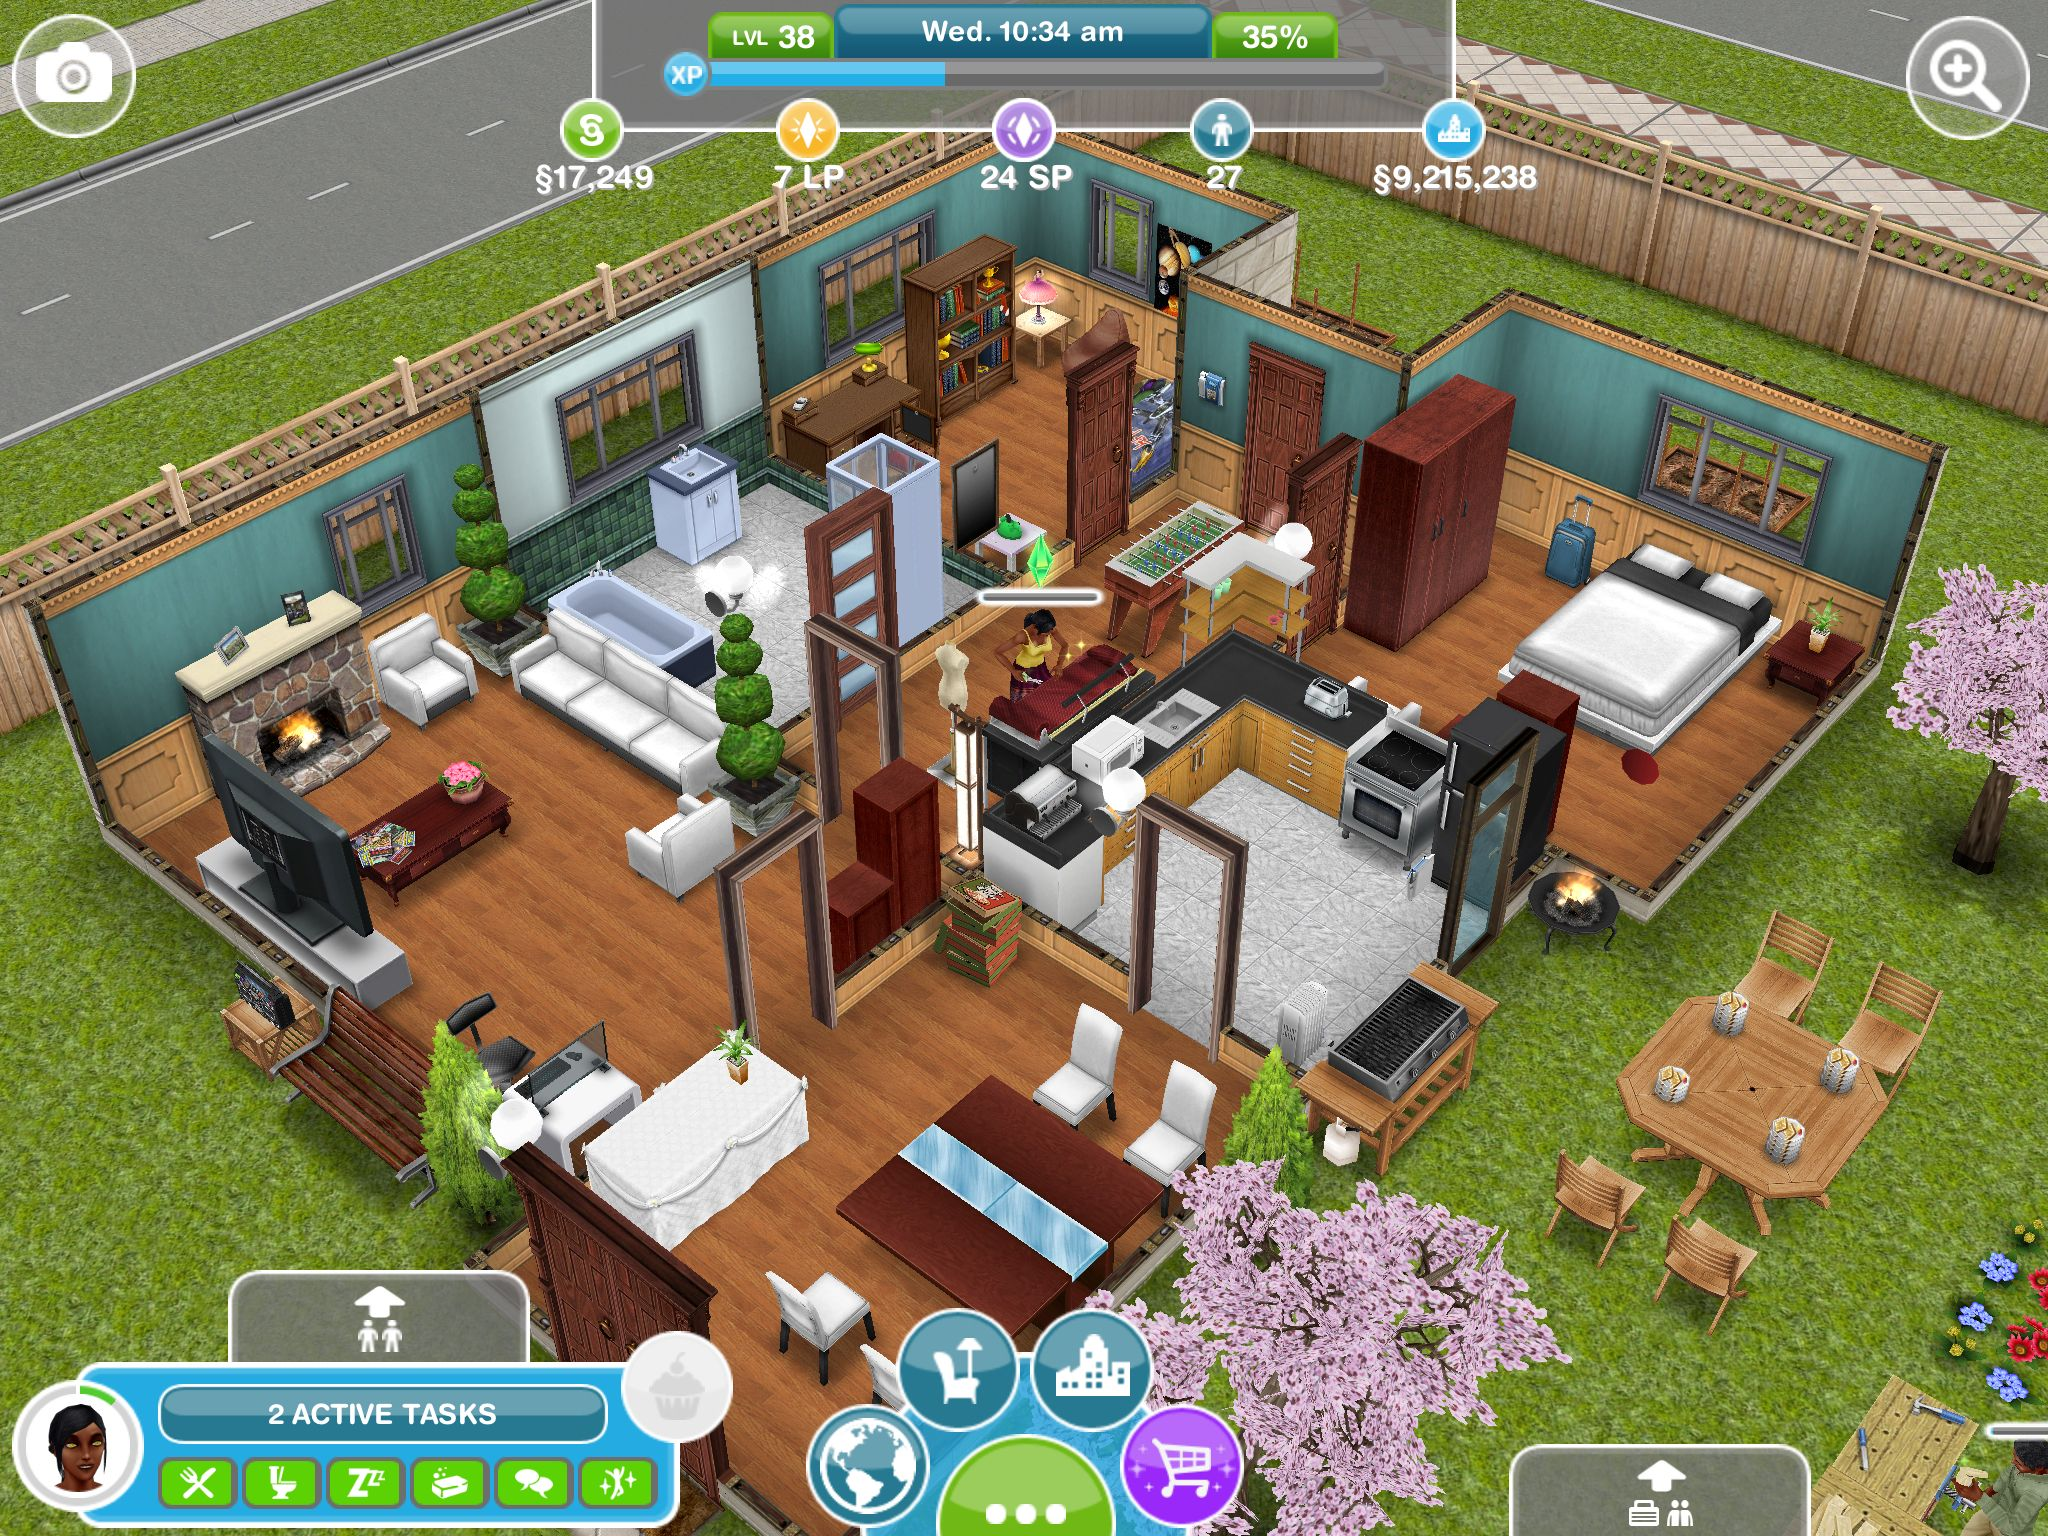 Complete Home Designer Pack Sims Freeplay - valoblogi.com on this is home, sims free play family house, sims free play fashion designer, sims 3 house layouts, play design this home, sims on sims free play house, sims free play room ideas, sims 3 small house plans, design your own home, sims bustin' out house designs, sims home design, sims 3 mobile home, sims free play theme homes,